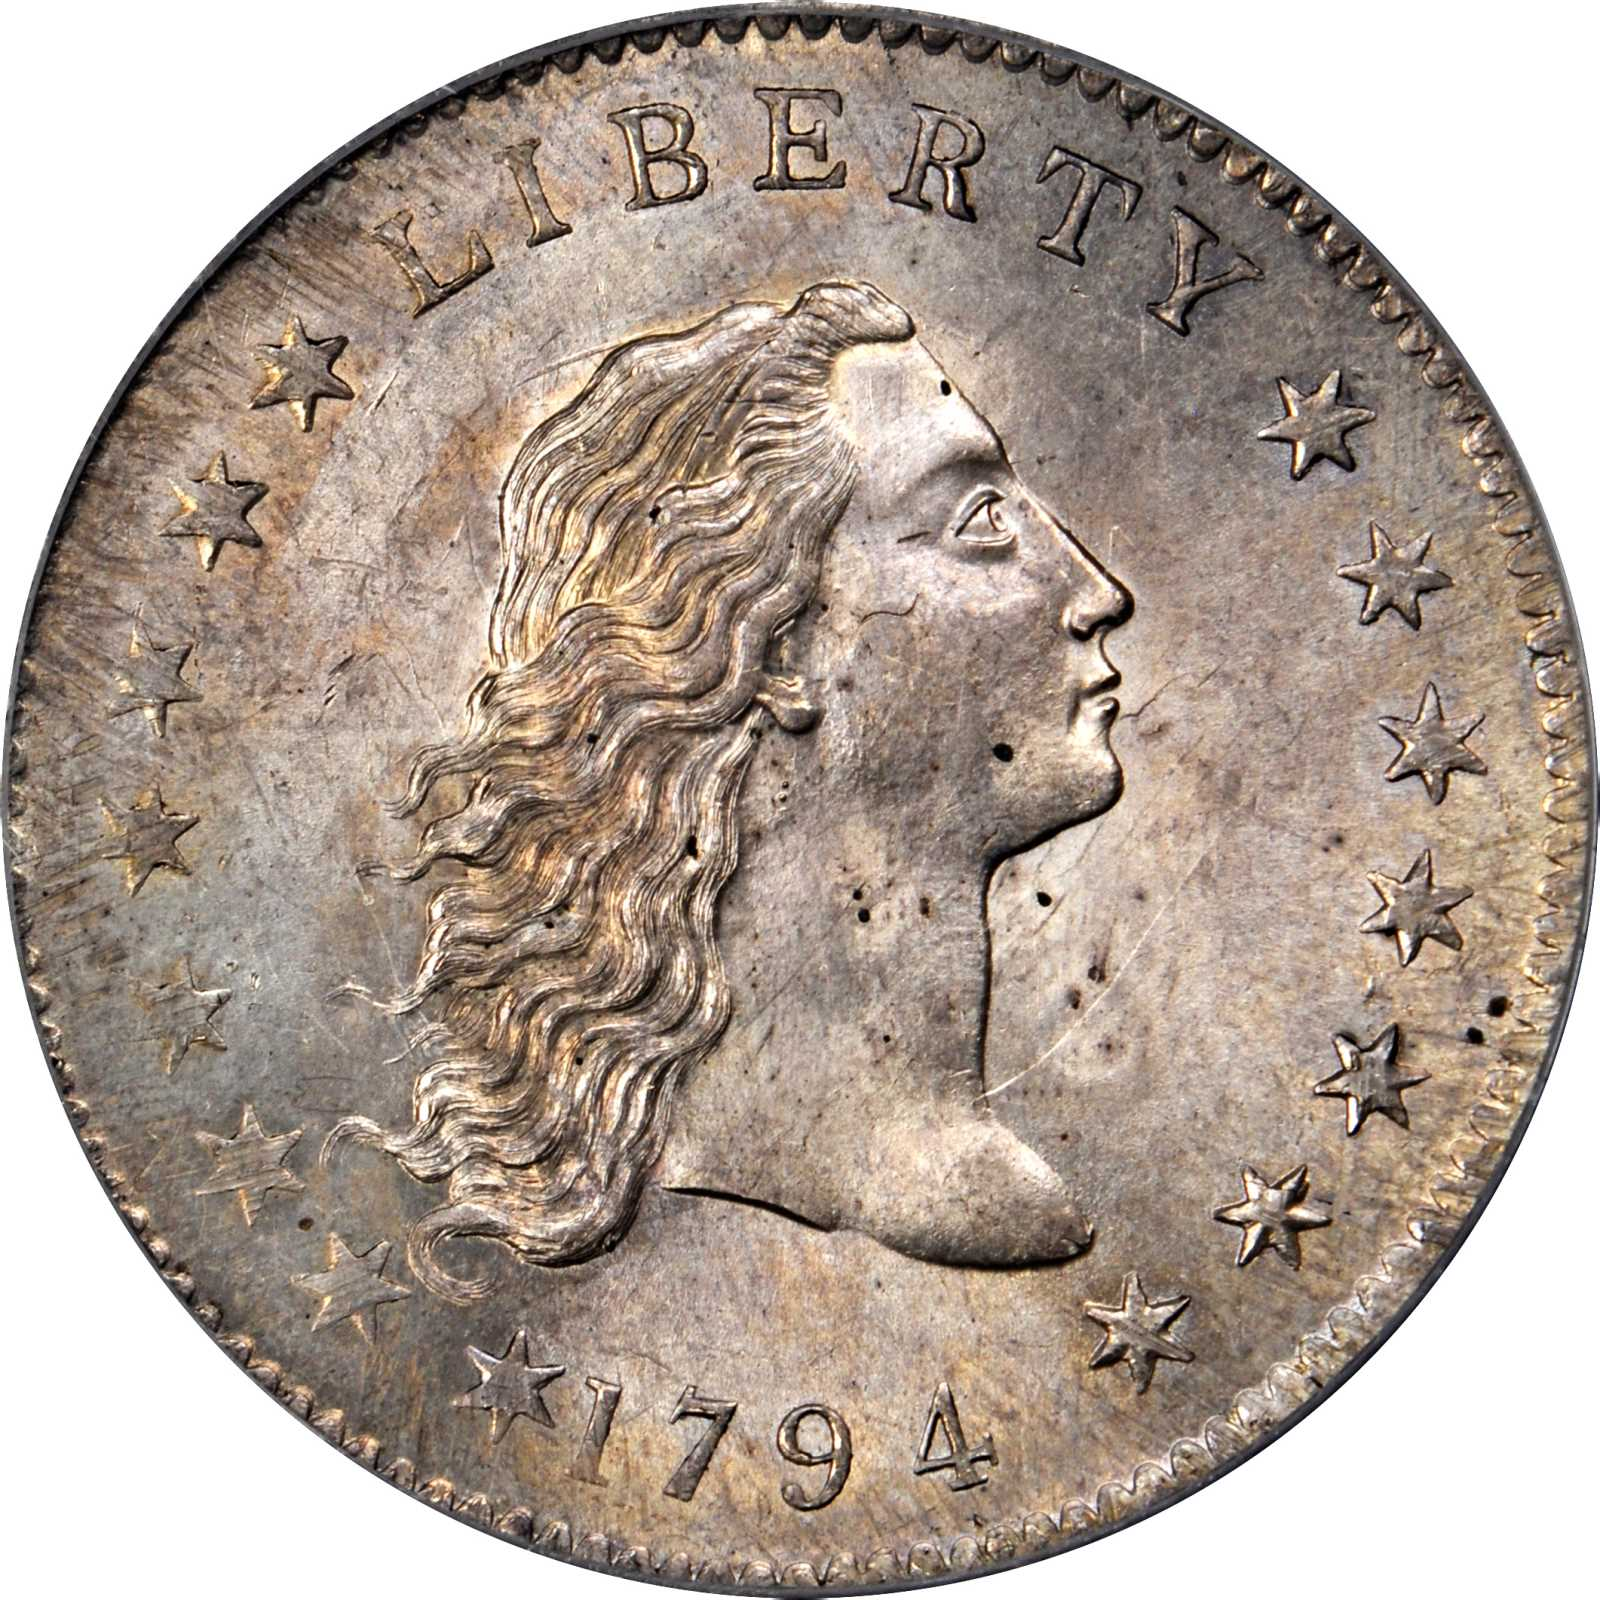 1794 Flowing Hair Silver Dollar. BB-1, B-1, the only known dies. Rarity-4. MS-64 (PCGS). CAC. | Stacks Bowers